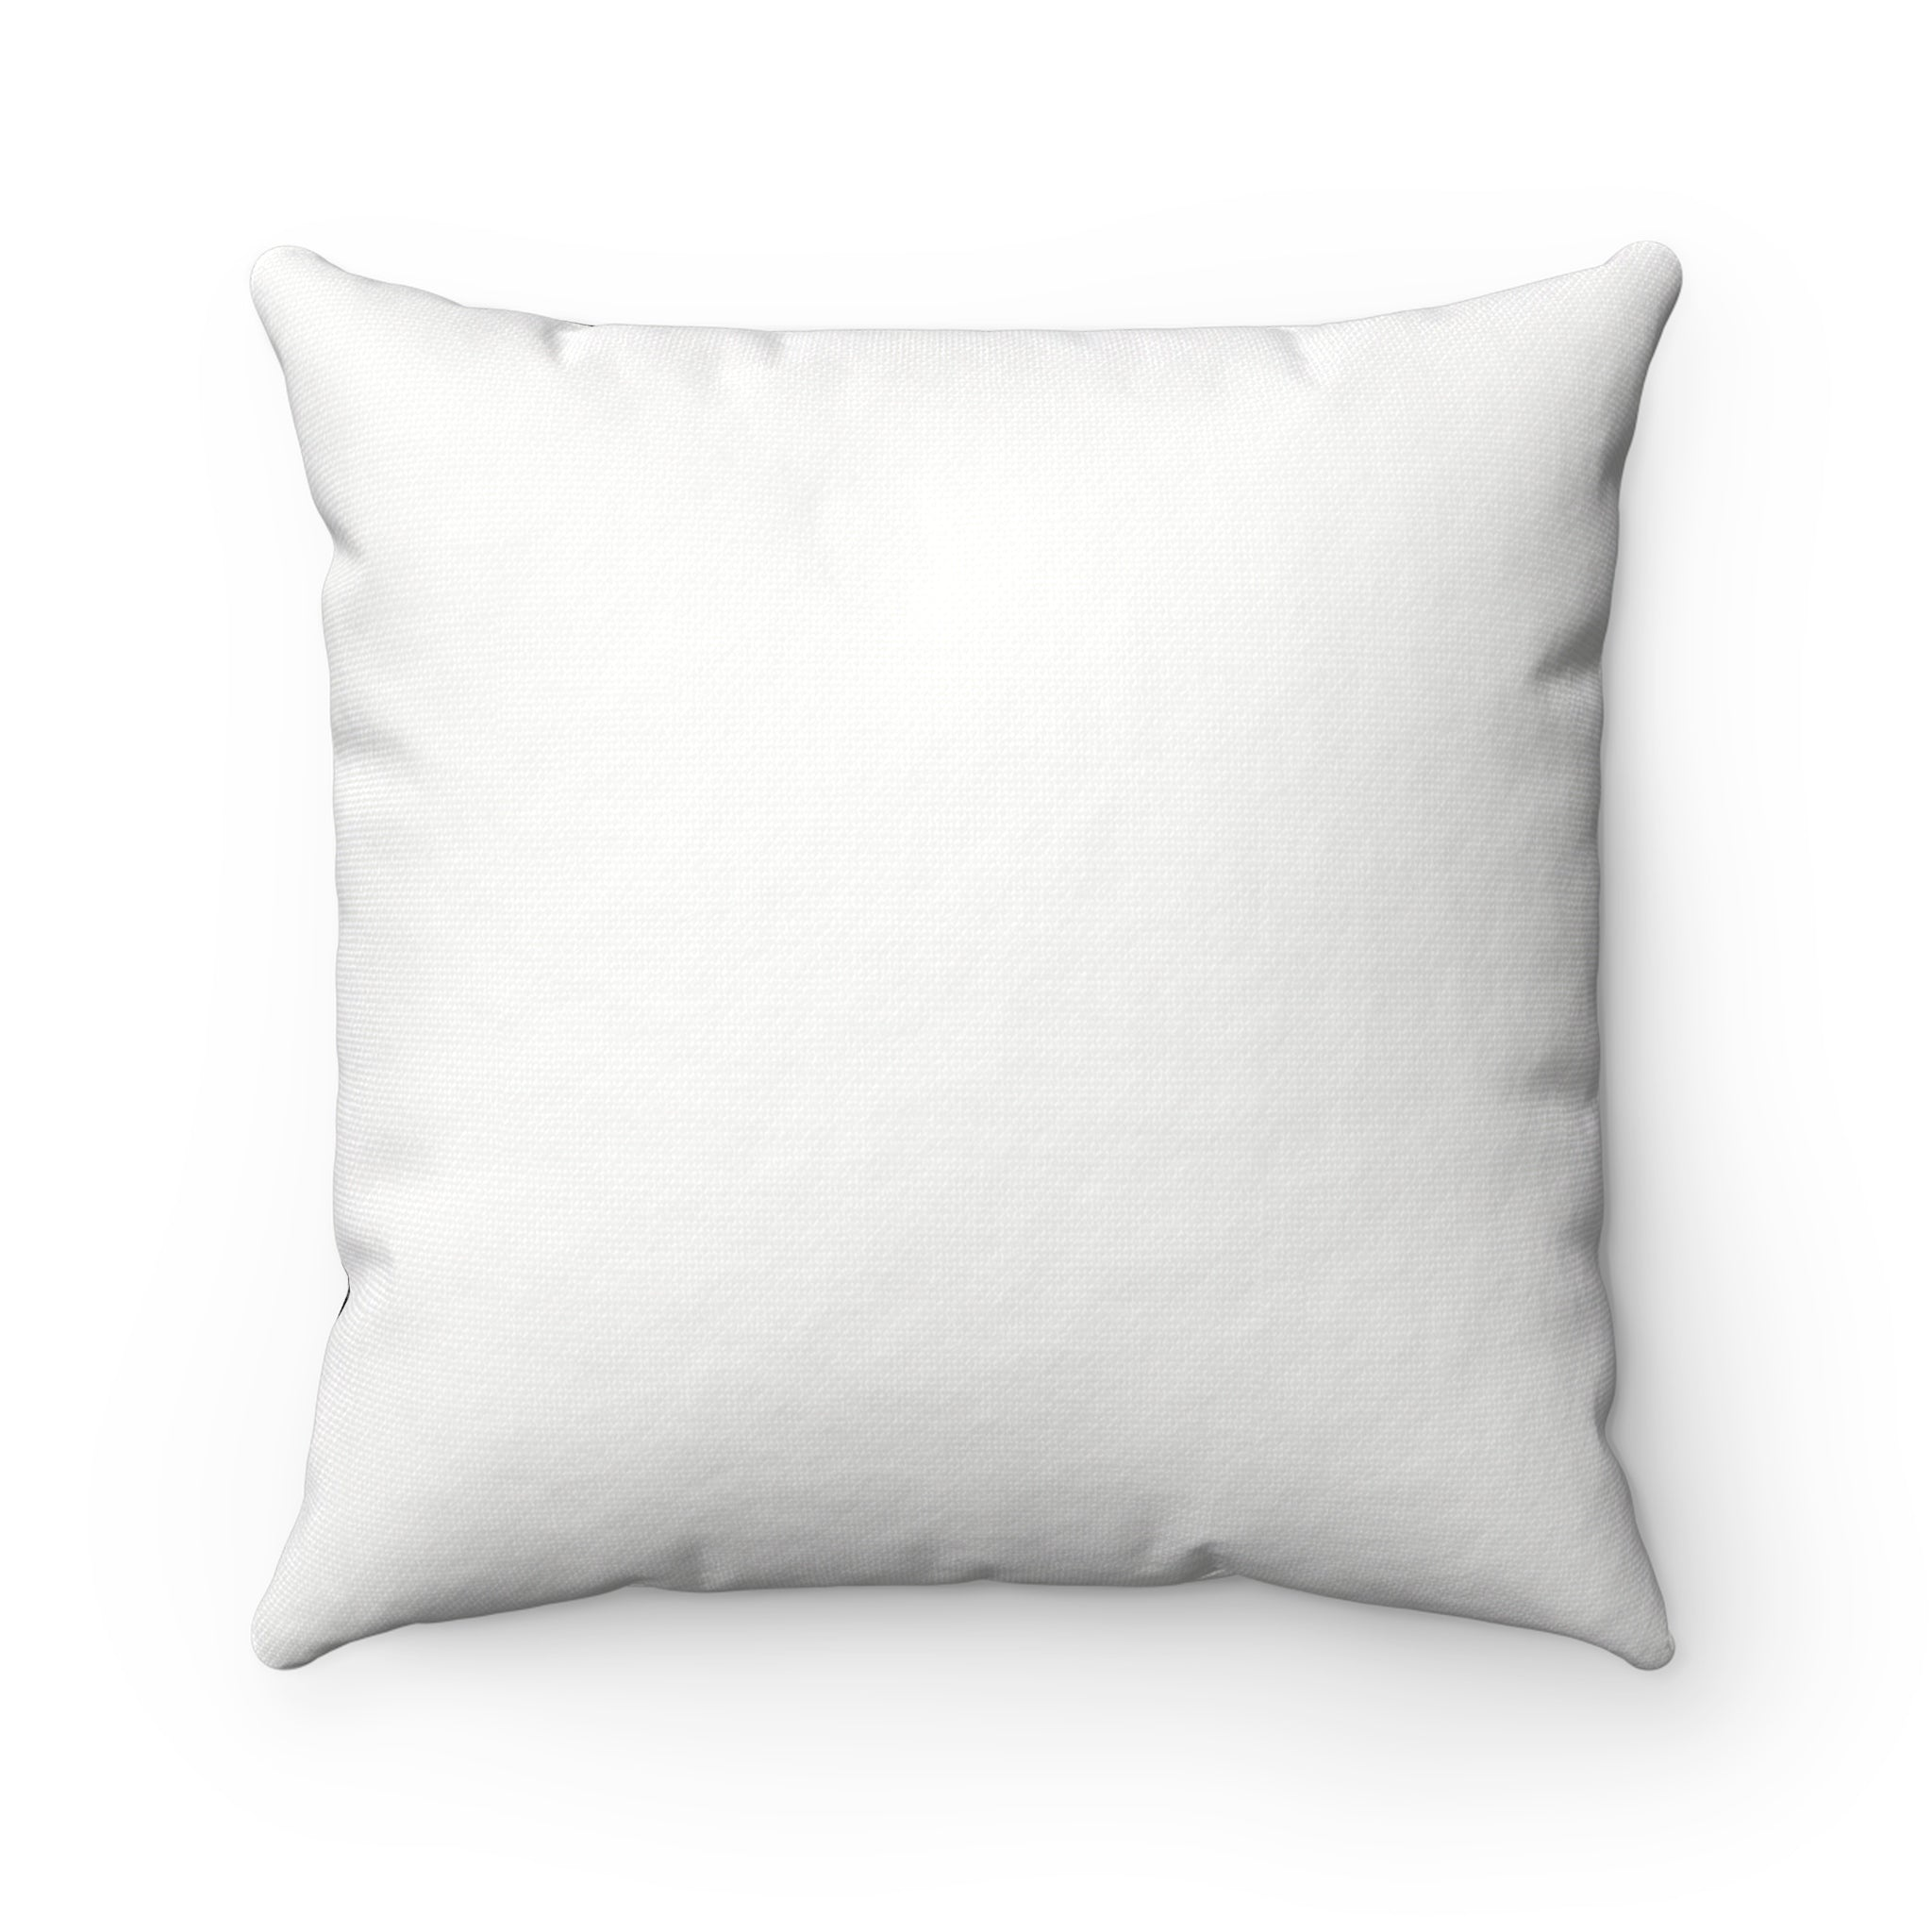 Snow Flake Throw Pillow